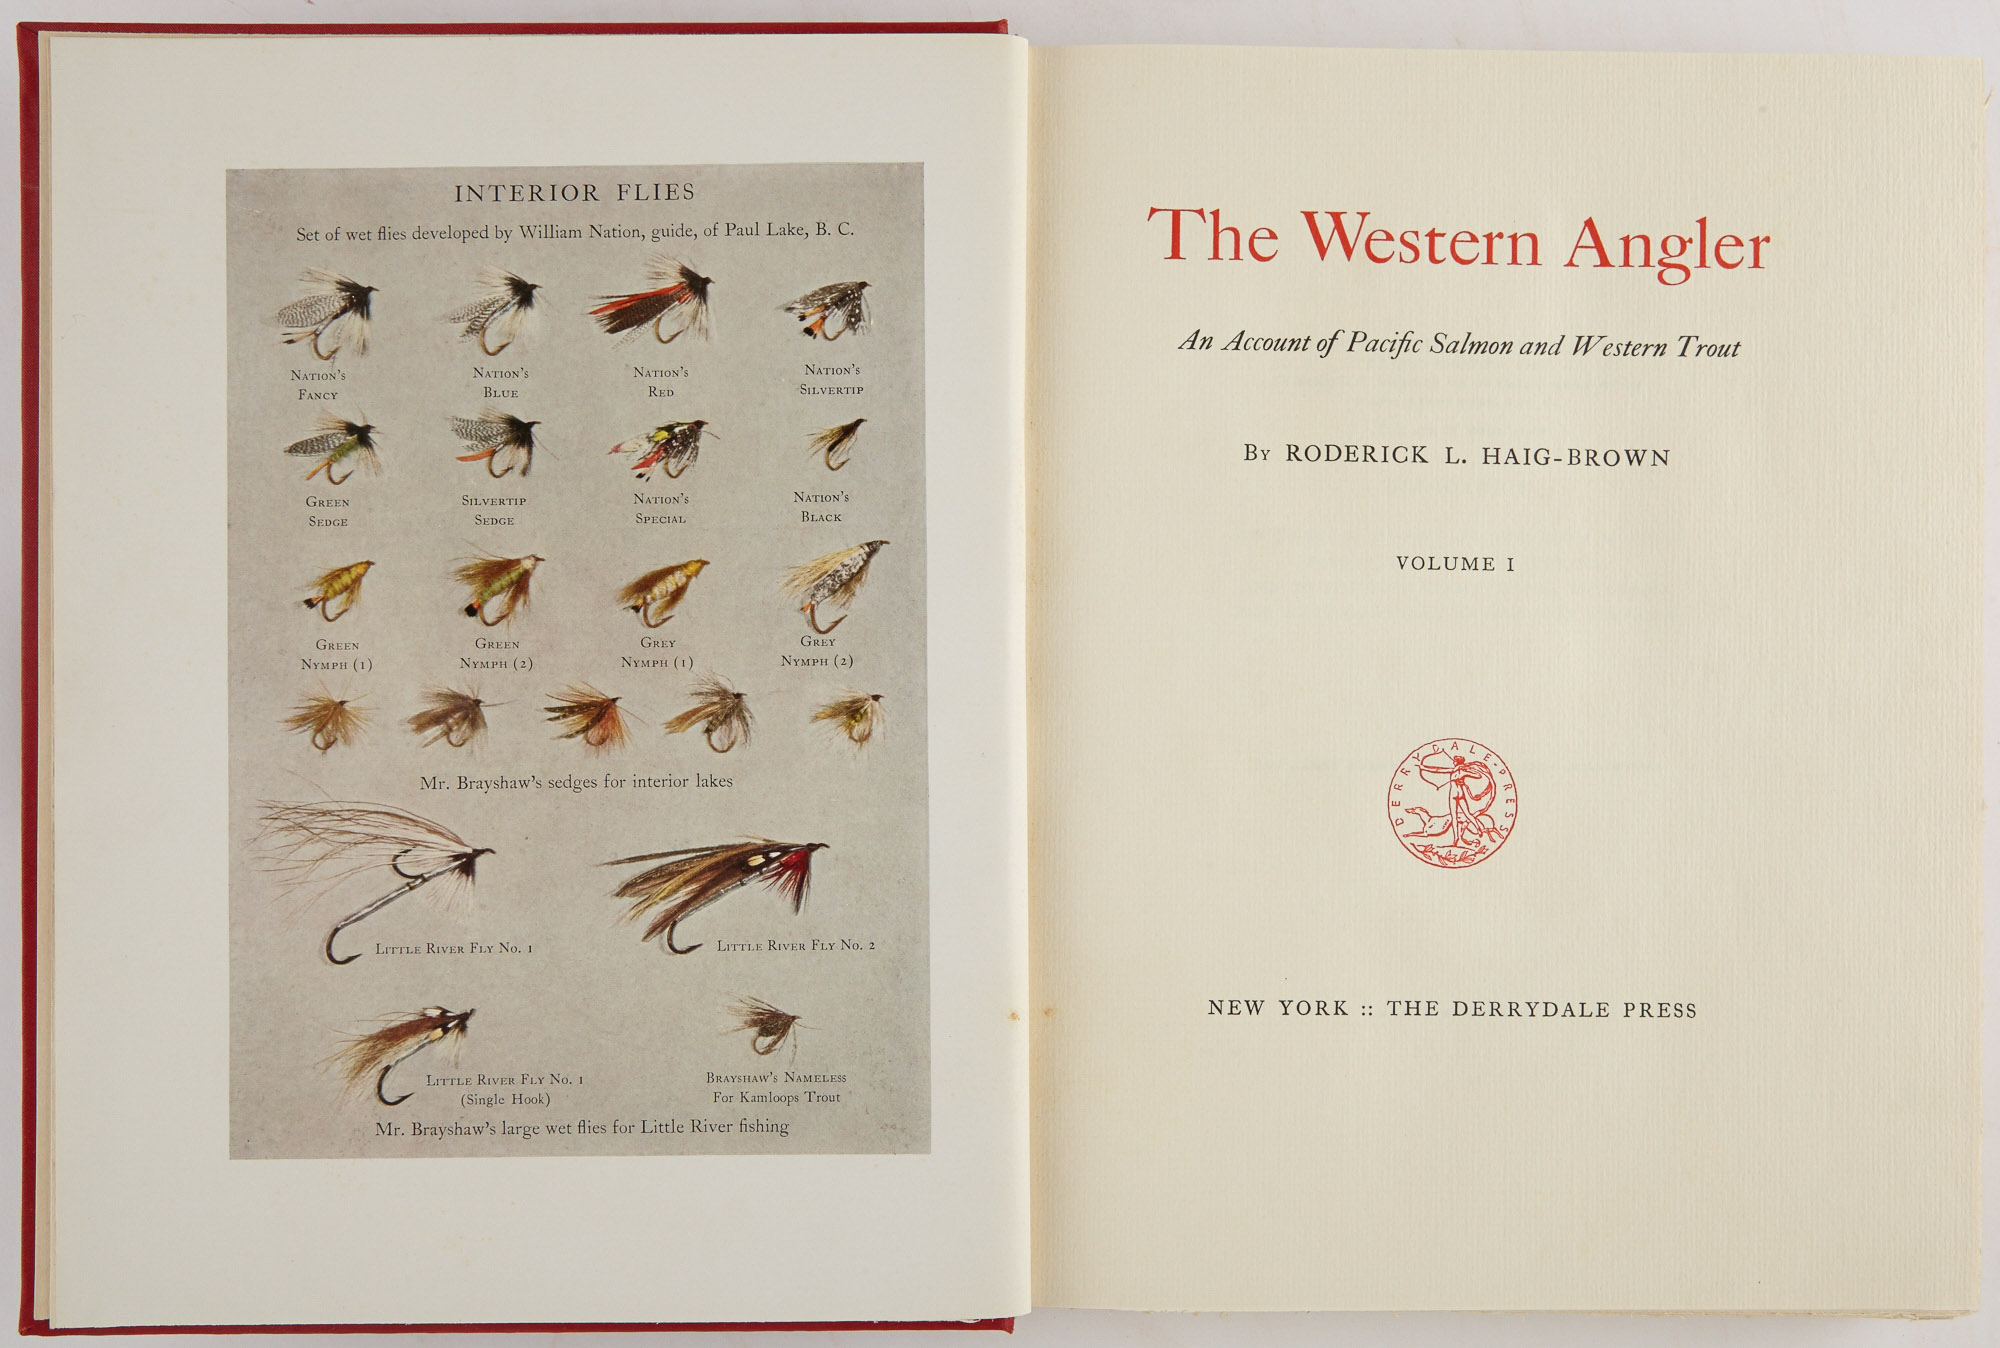 Lot image - HAIG-BROWN, RODERICK L.  The Western Angler. An Account of Pacific Salmon and Western Trout.